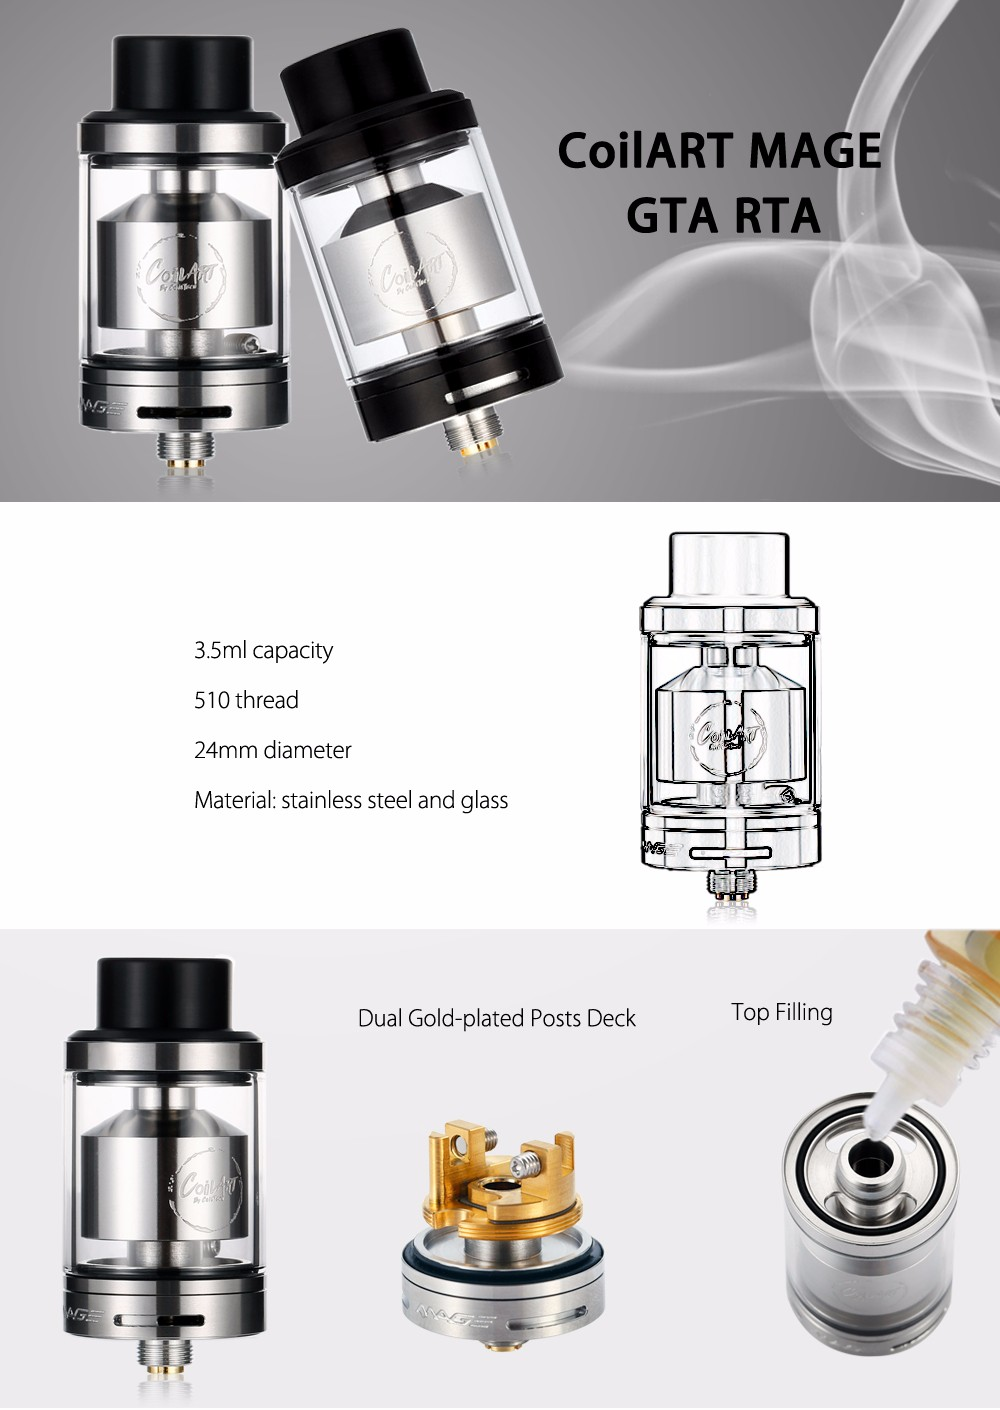 CoilART MAGE GTA RTA with 3.5ml Capacity / 24mm Diameter / Bottom Airflow for E Cigarette